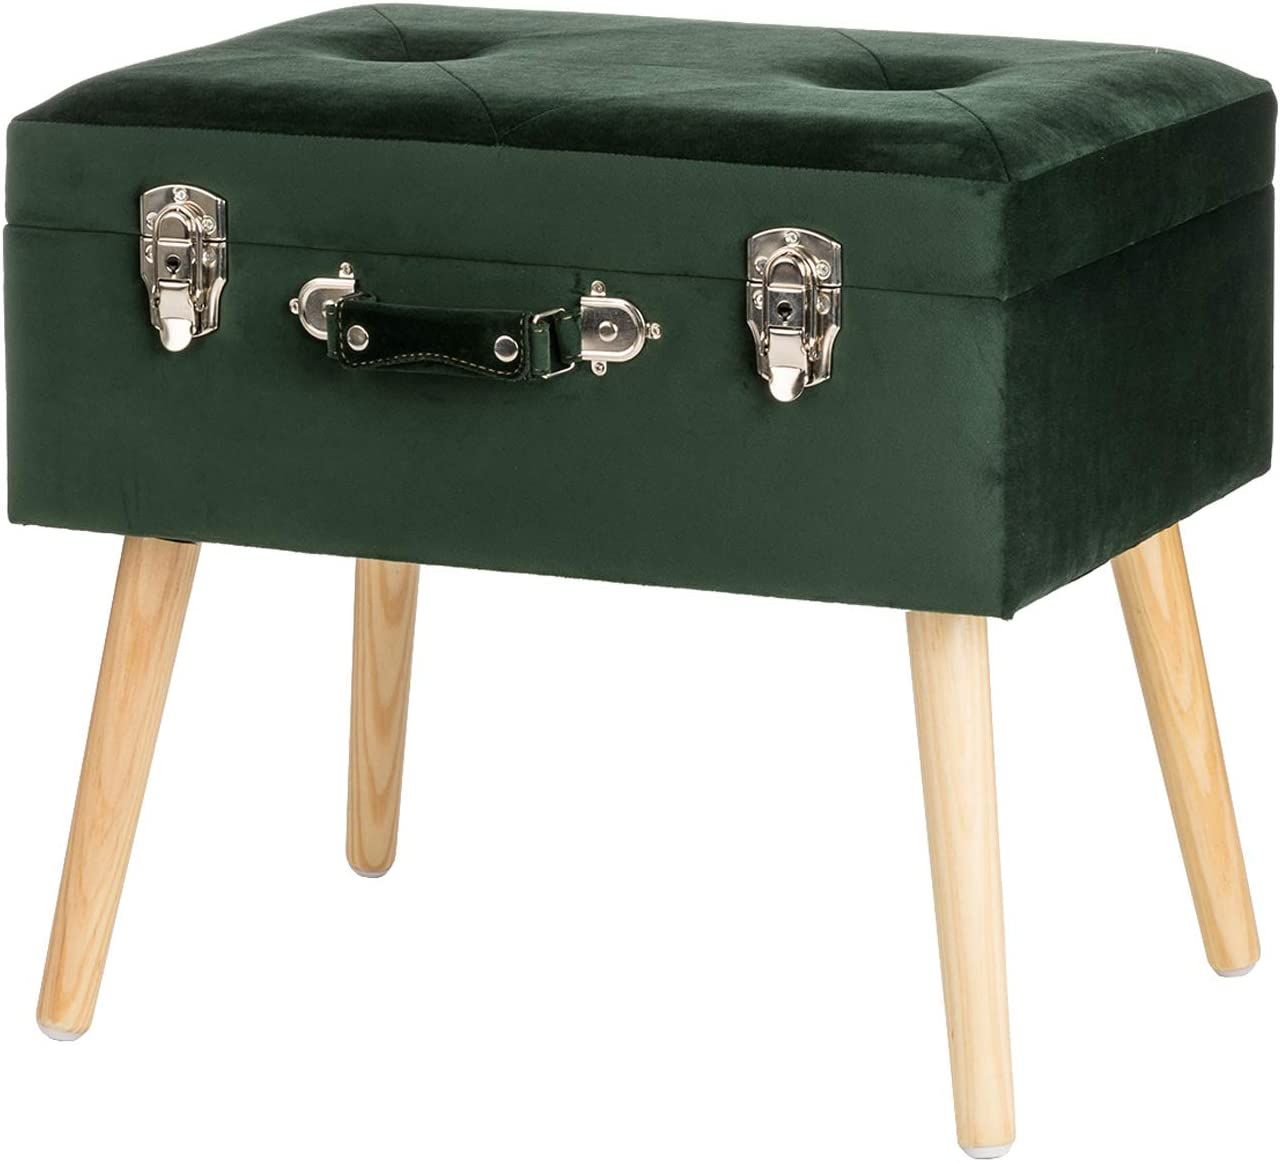 Glitzhome Velvet Foot Stool Seat Storage Footrest Stool Modern Dressing Upholstered Vanity Stool Padded Ottoman with Tufted Seat Wood Legs Decorative Accent Furniture Shoes Bench, Dark Green